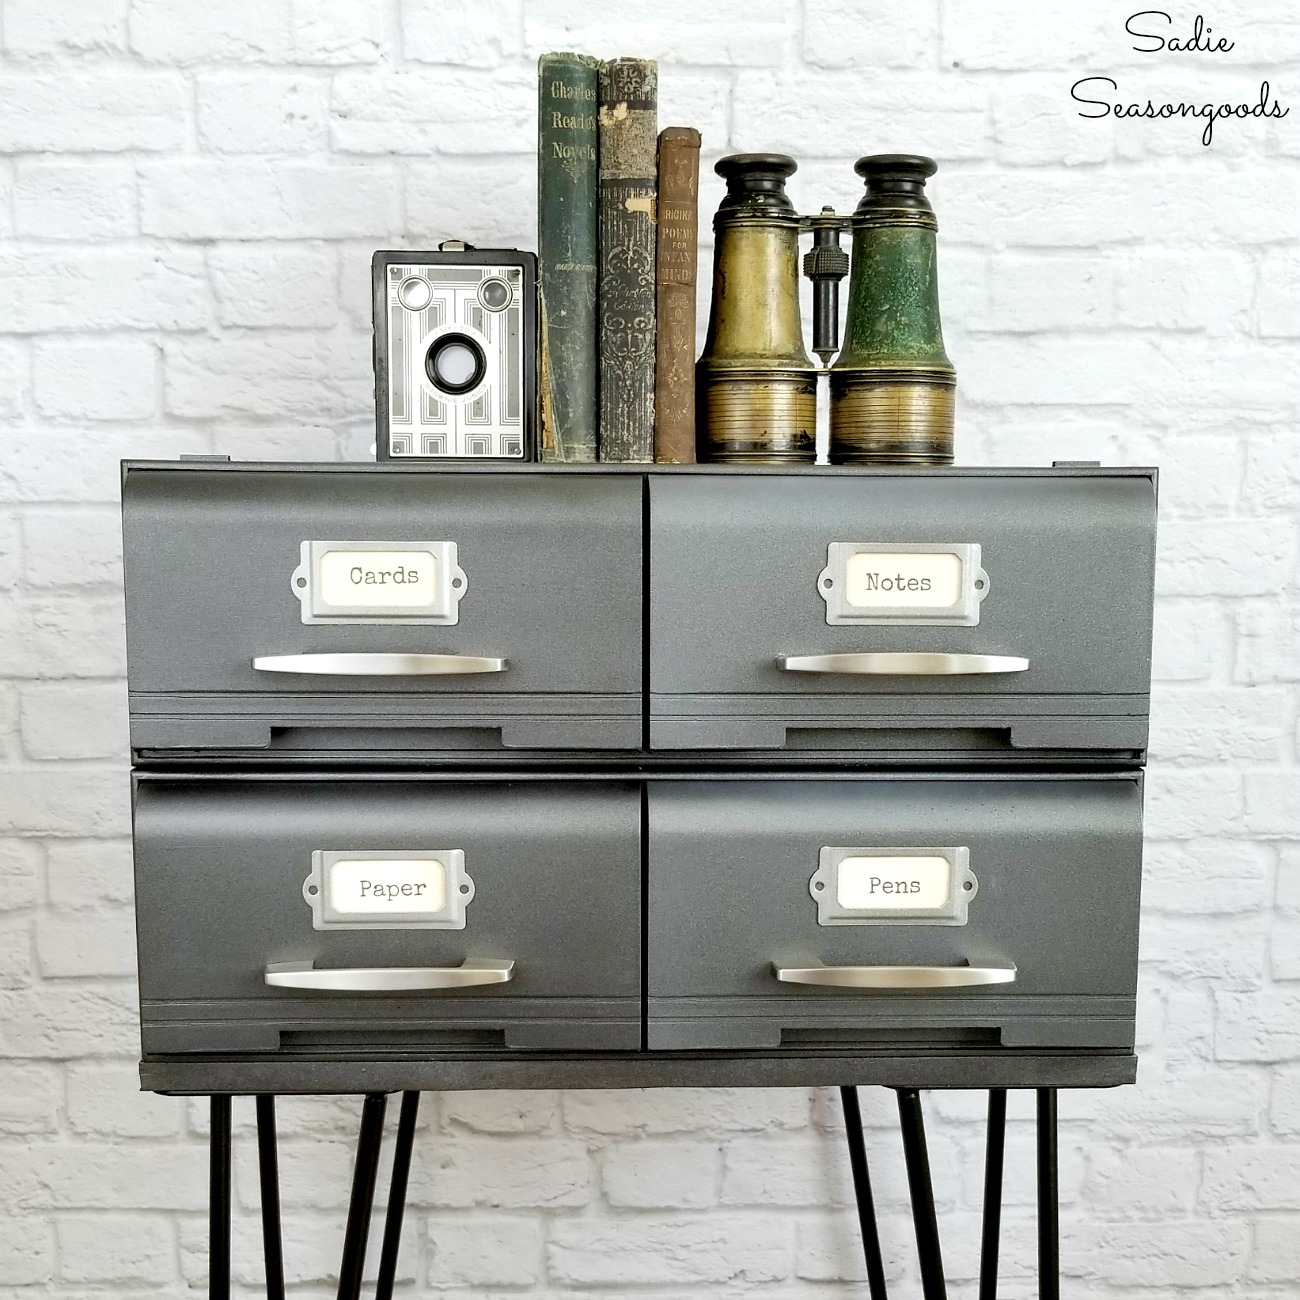 Industrial bedside table or modern industrial furniture that started as VHS storage or cassette tape storage